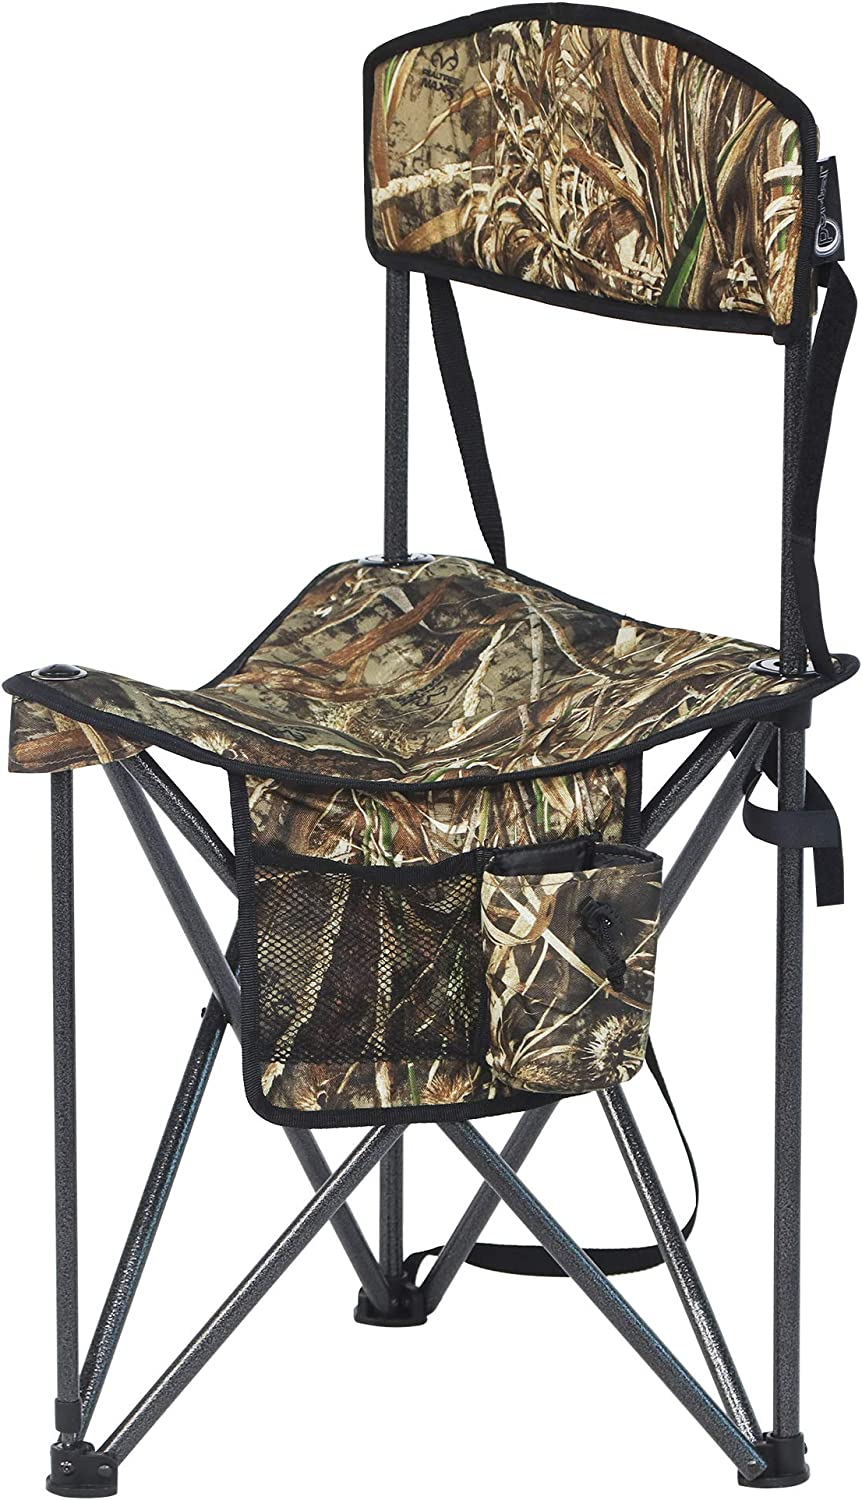 PORTAL Extra Large Quick Folding Tripod Stool with Backrest Fishing Camping Chair with Carry Strap (CAMO)